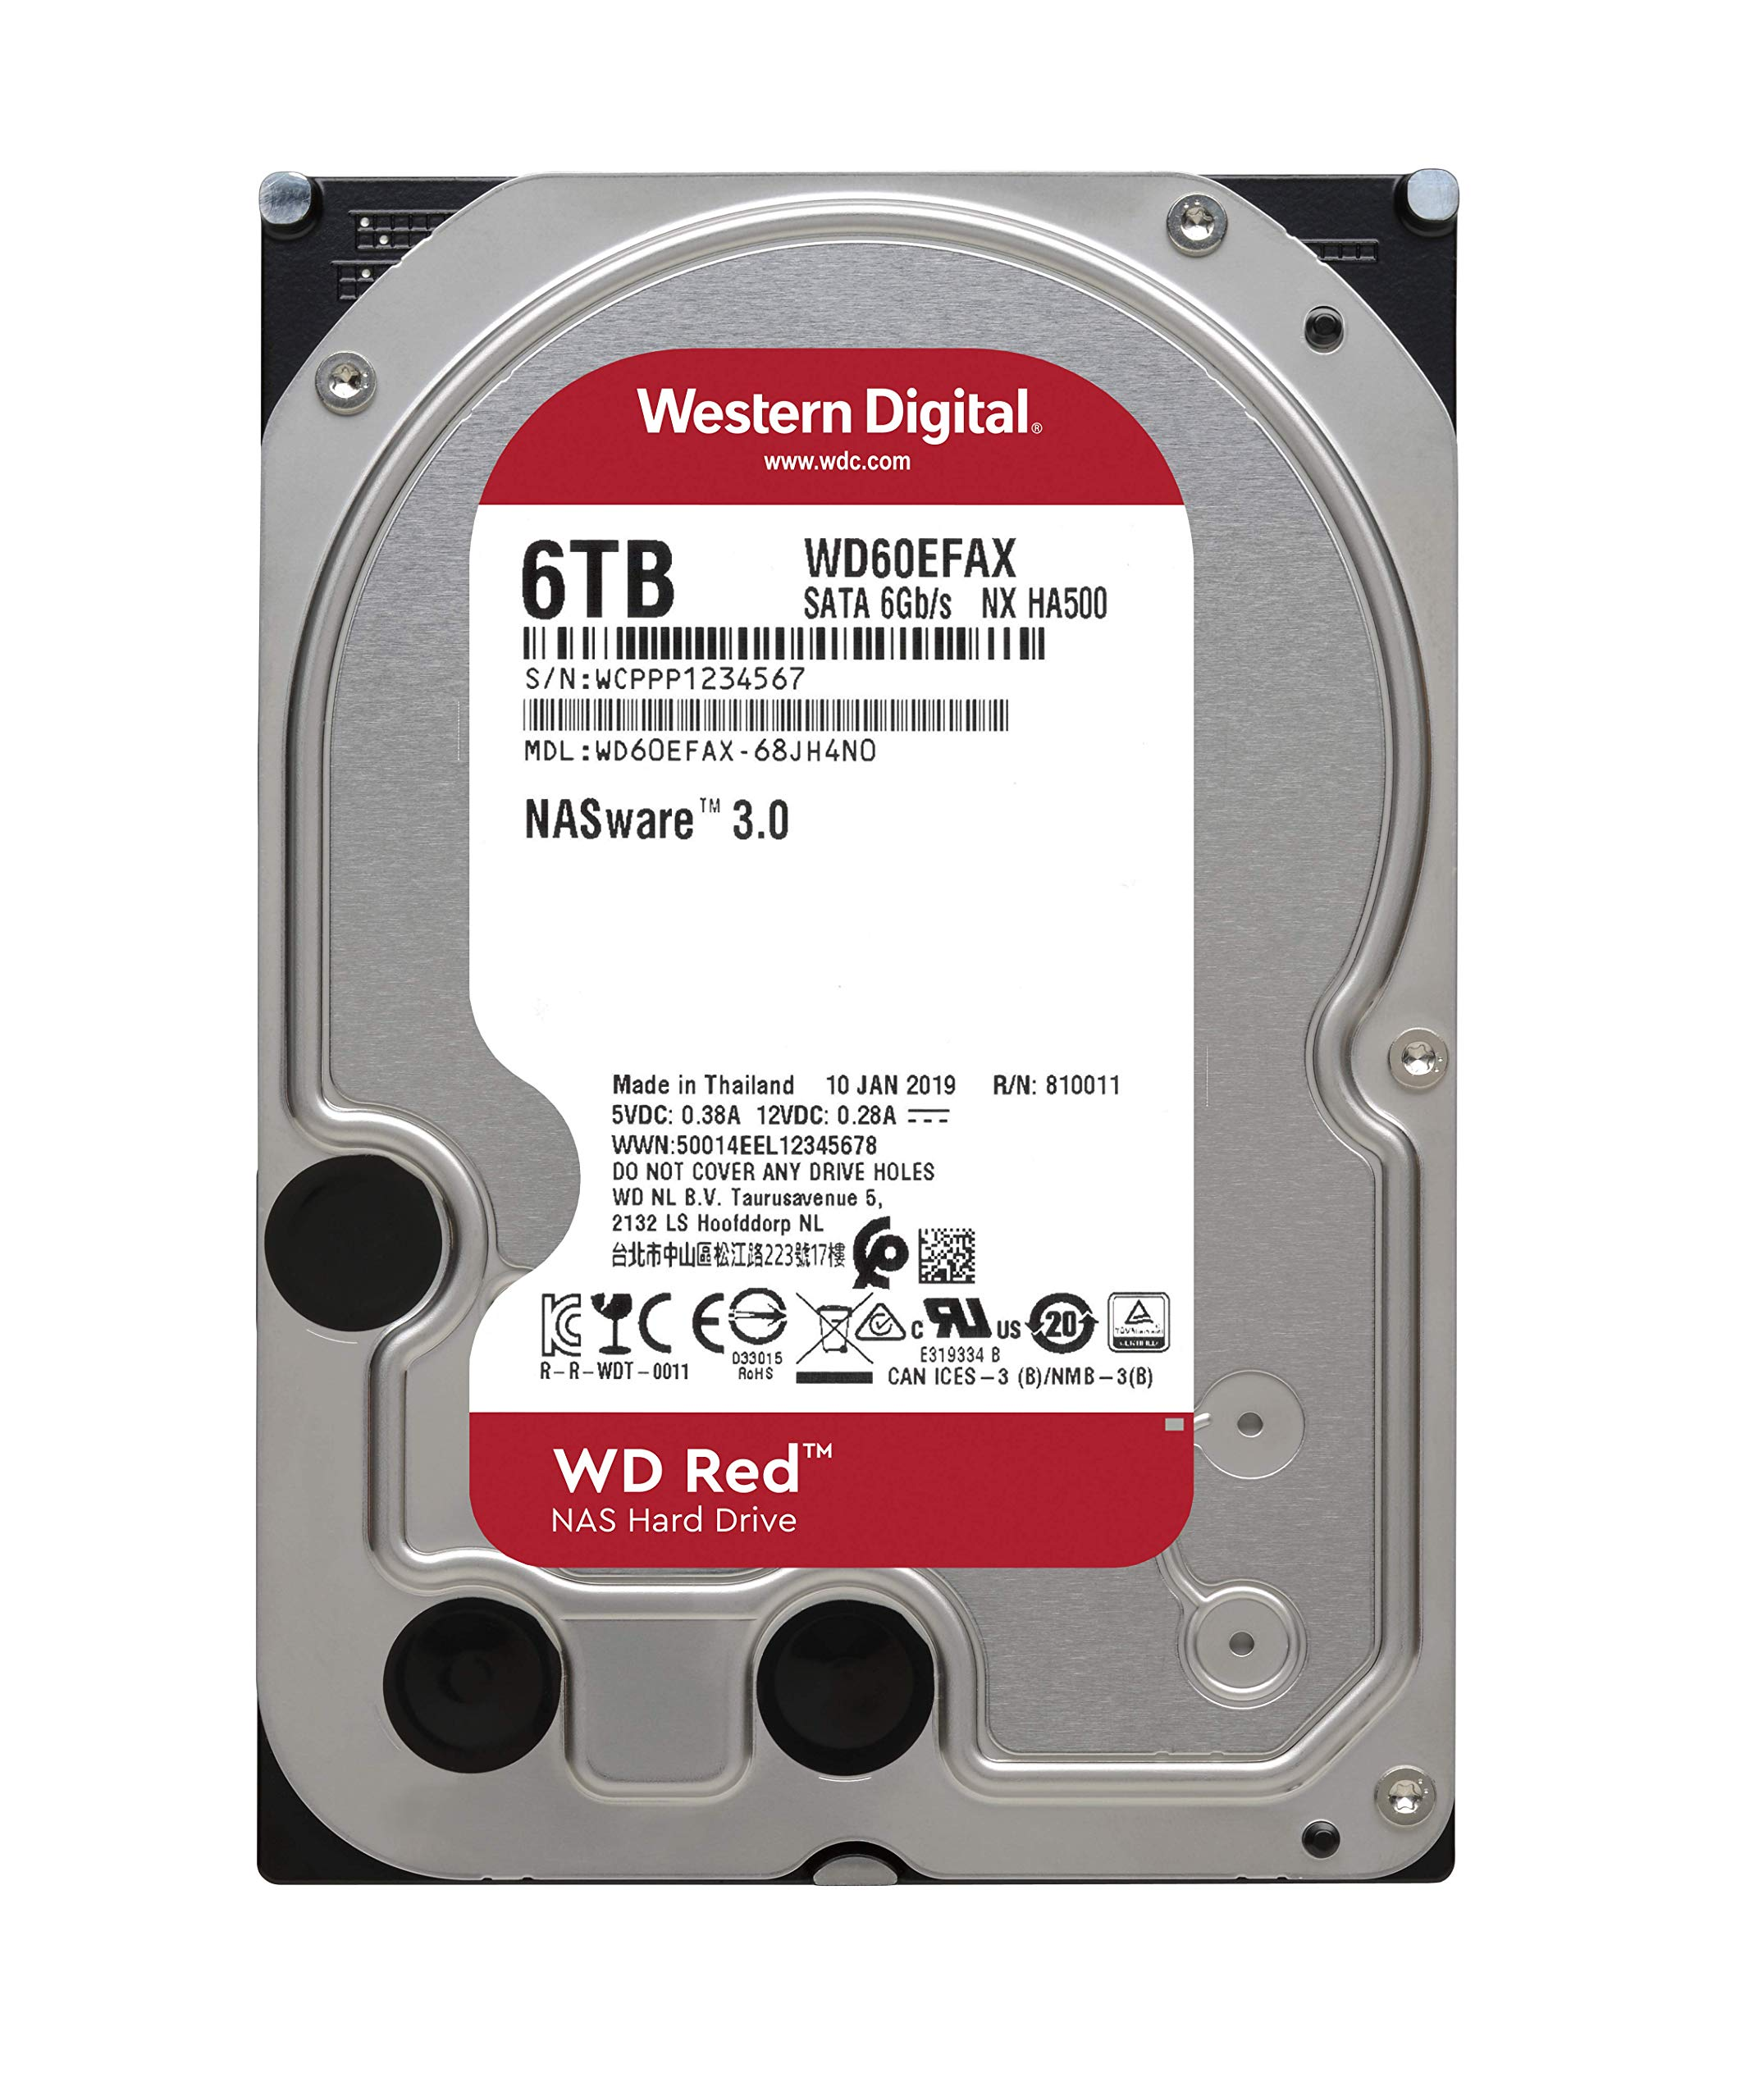 WD Red 6TB NAS Internal Hard Drive - 5400 RPM Class, SATA 6 GB/S, 256MB Cache, 3.5'' - WD60EFAX by Western Digital (Image #3)